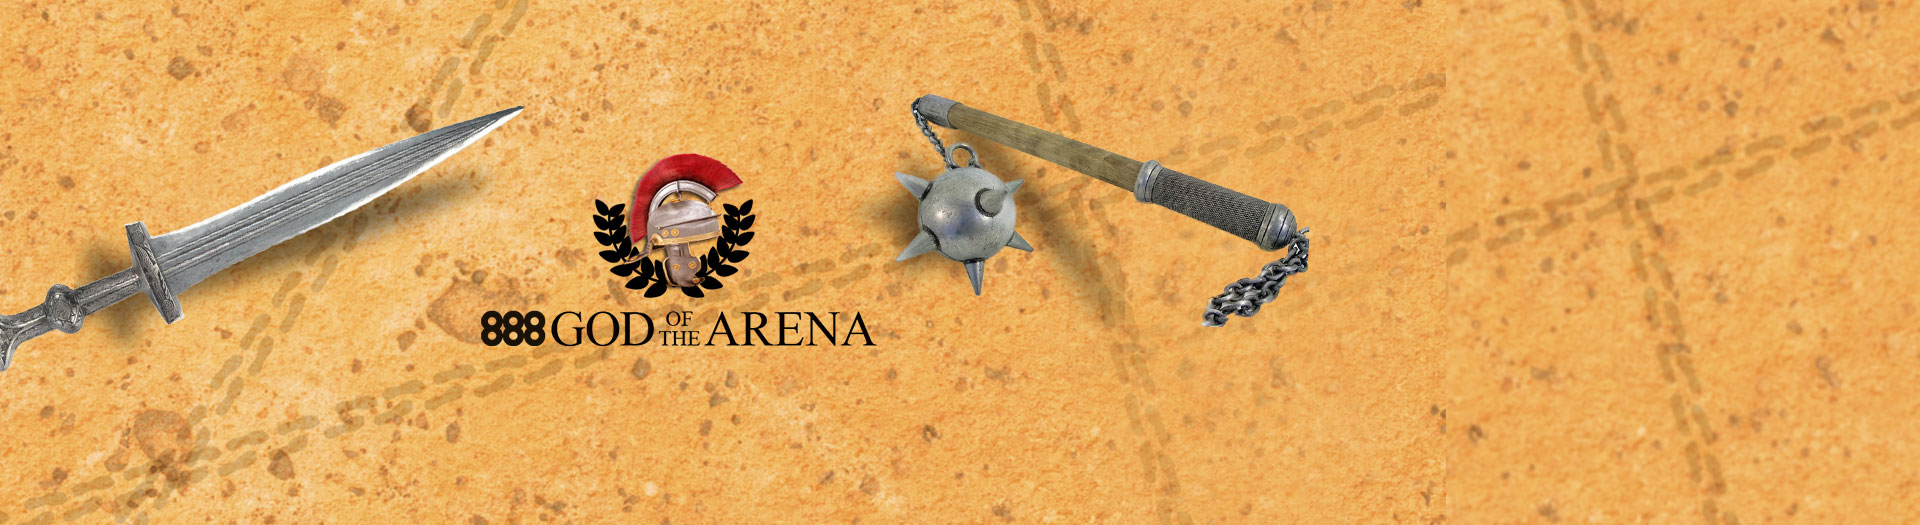 Arena888